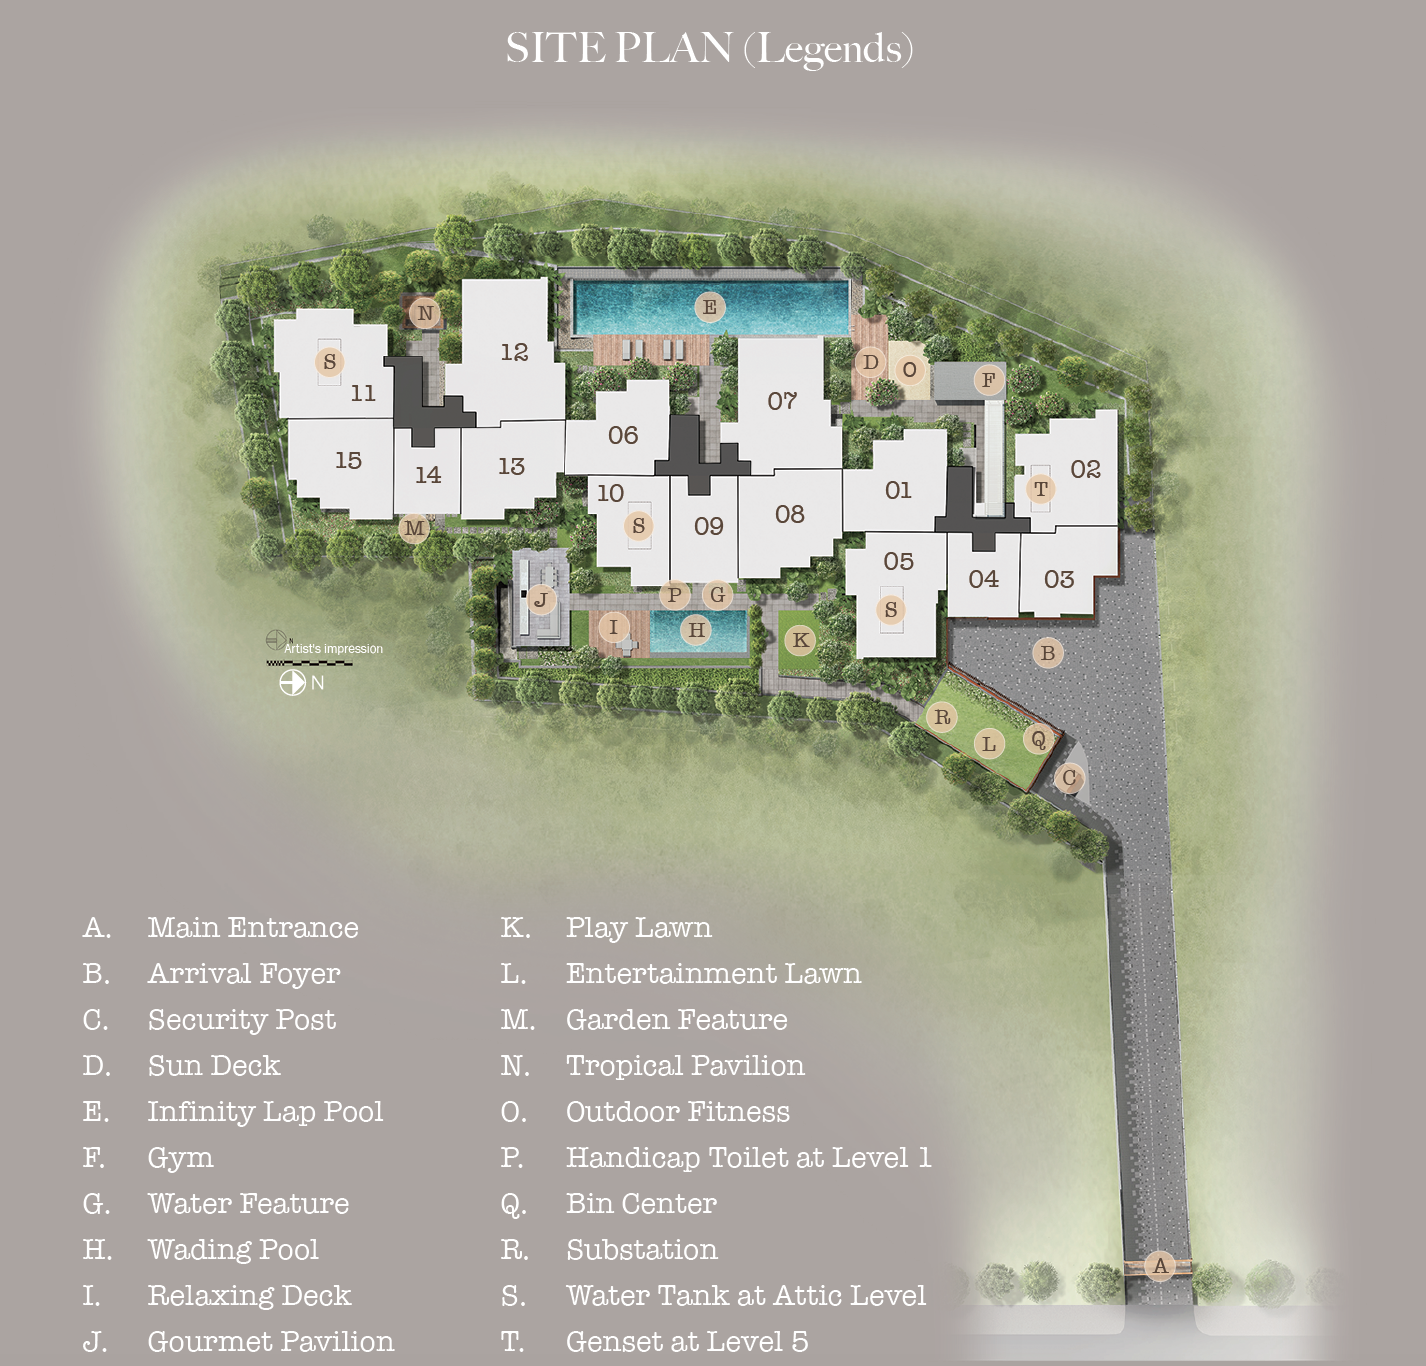 35 Gilstead site plan